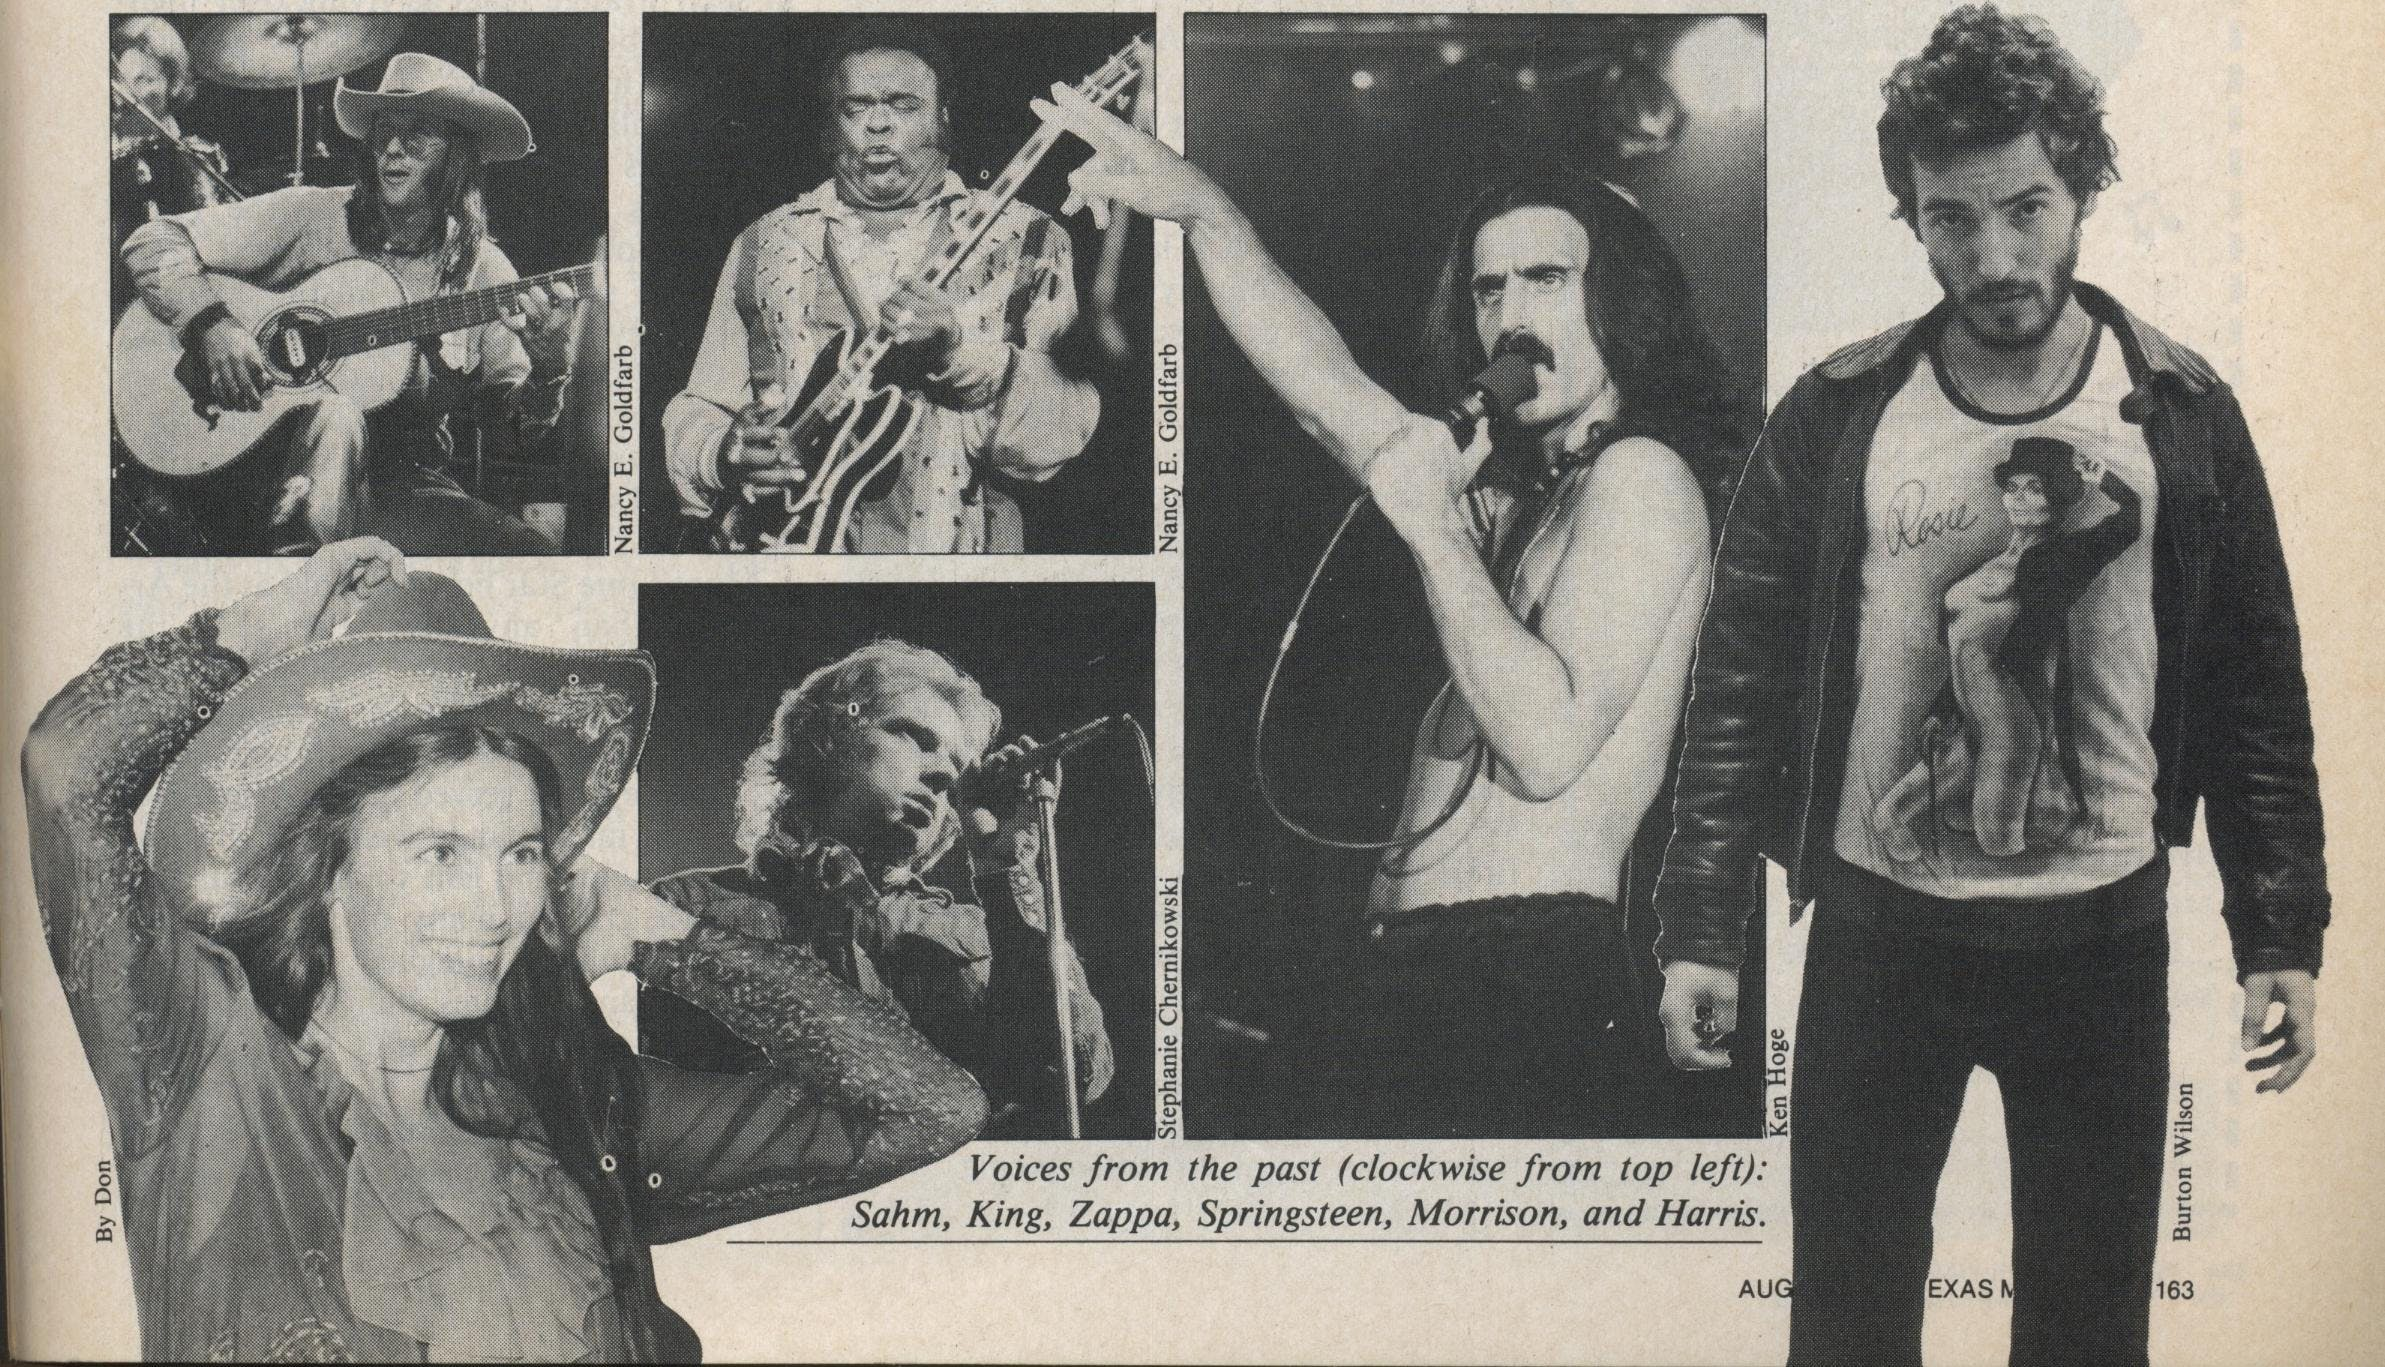 Voices from the past: Sahm, King, Zappa, Springsteen, Morrison, and Harris.